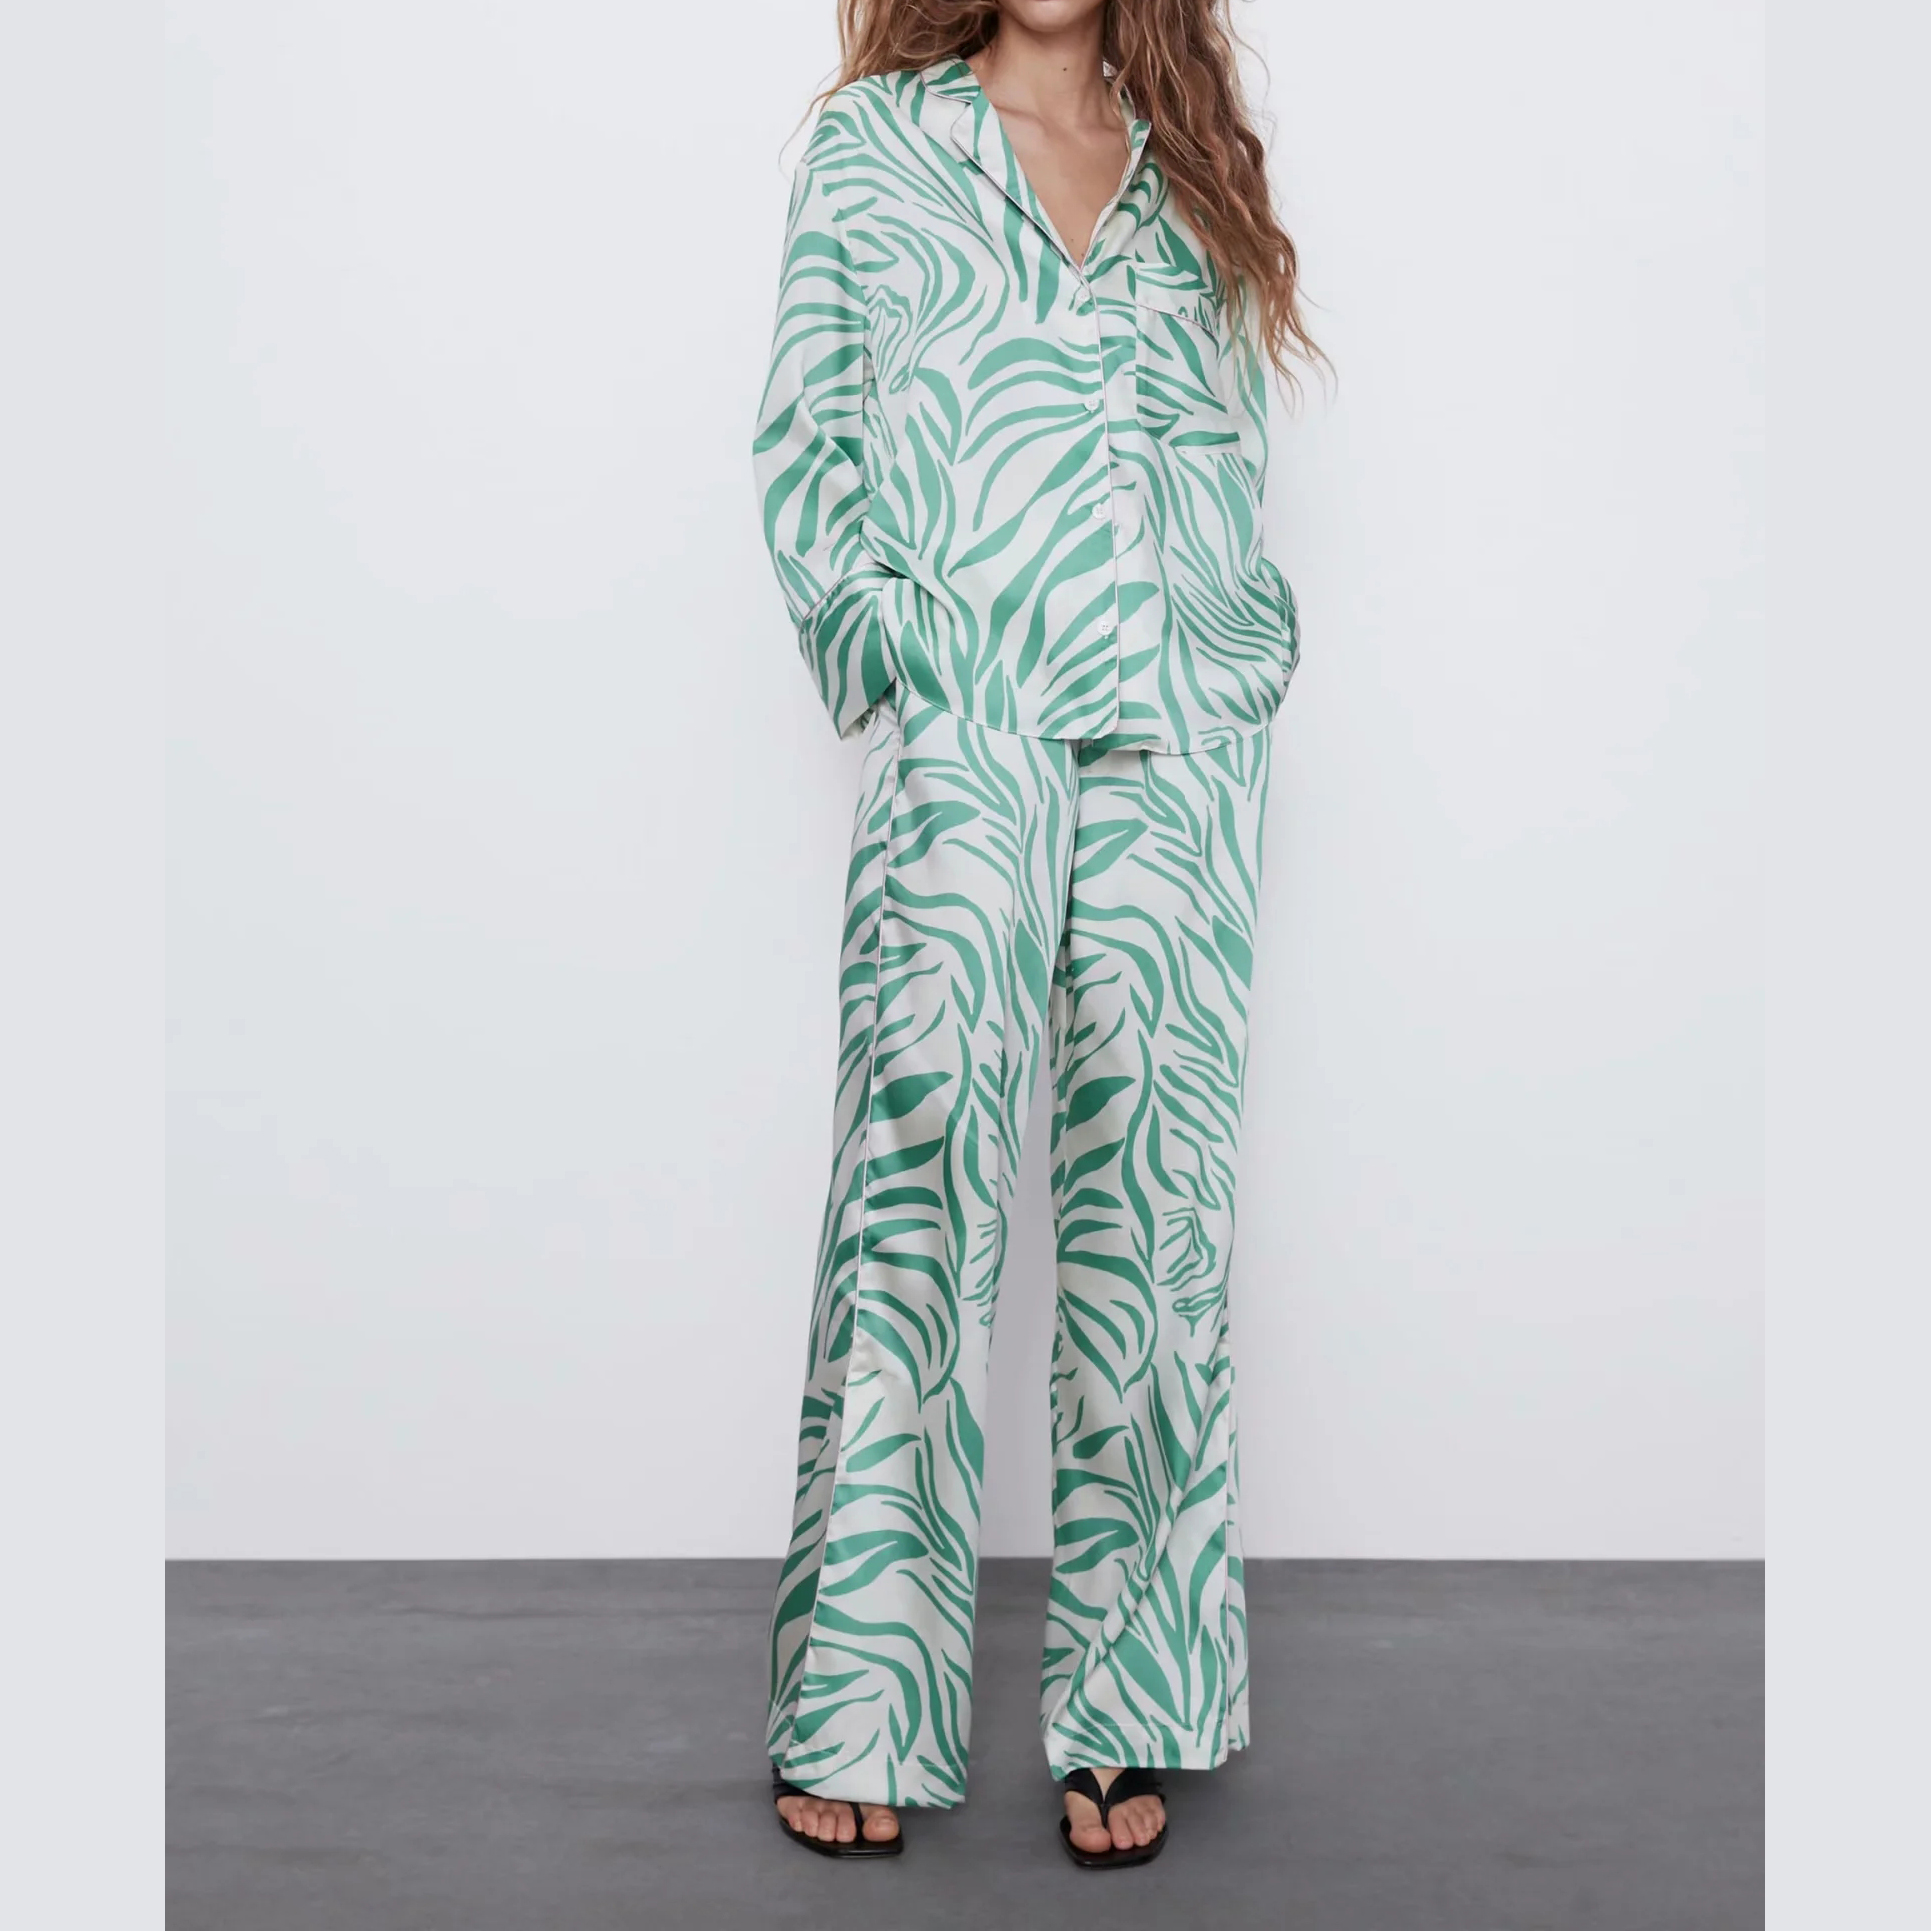 2020 New Summer Suits Women Two Piece Set Green Printed Pajama-style Top&pants High Waist Elastic Female Woman Clothes